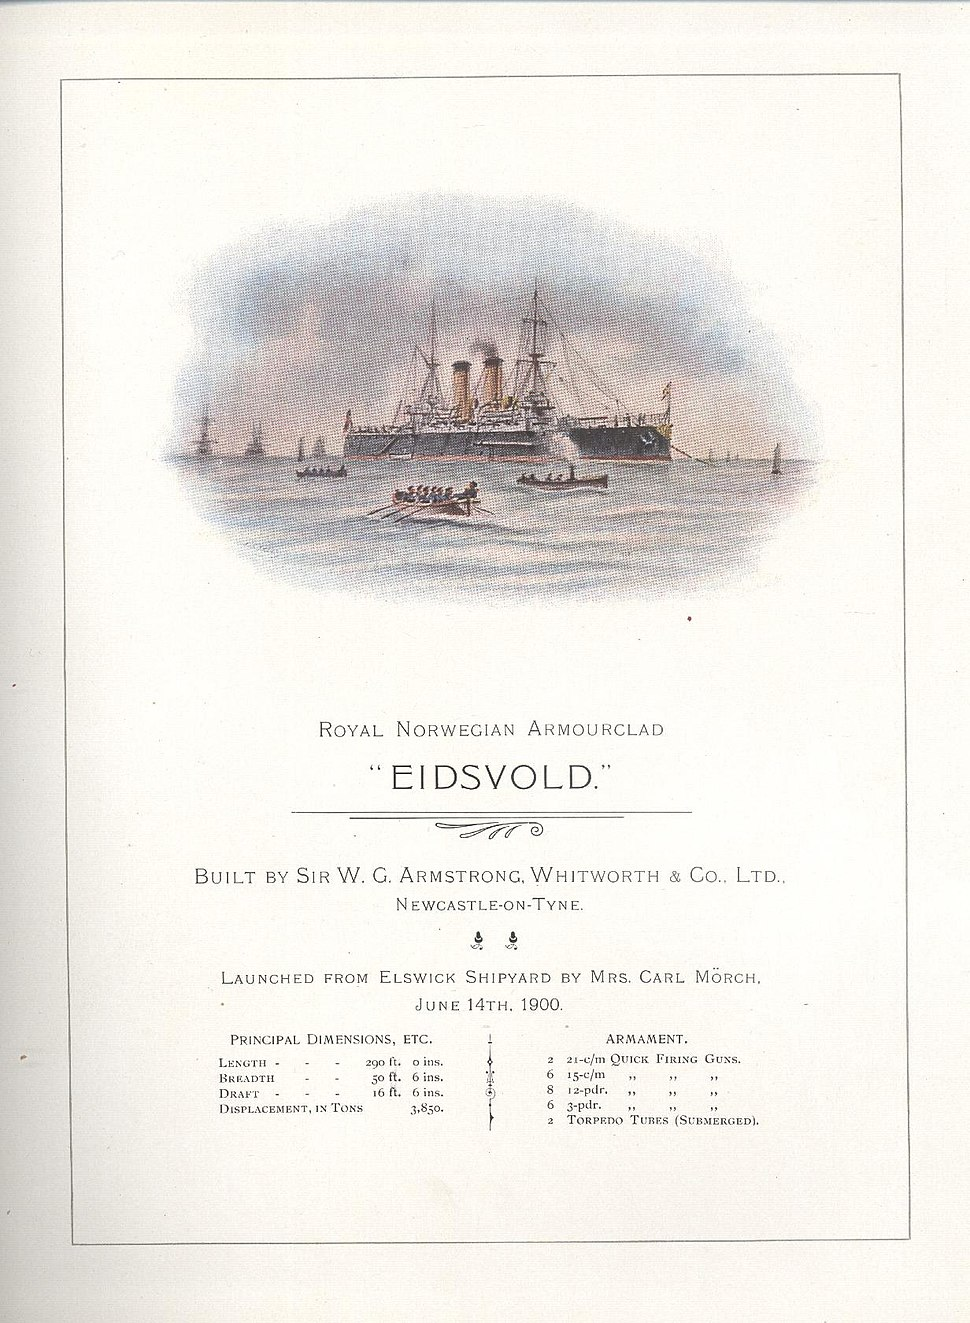 Eidsvold launch card June 14th 1900